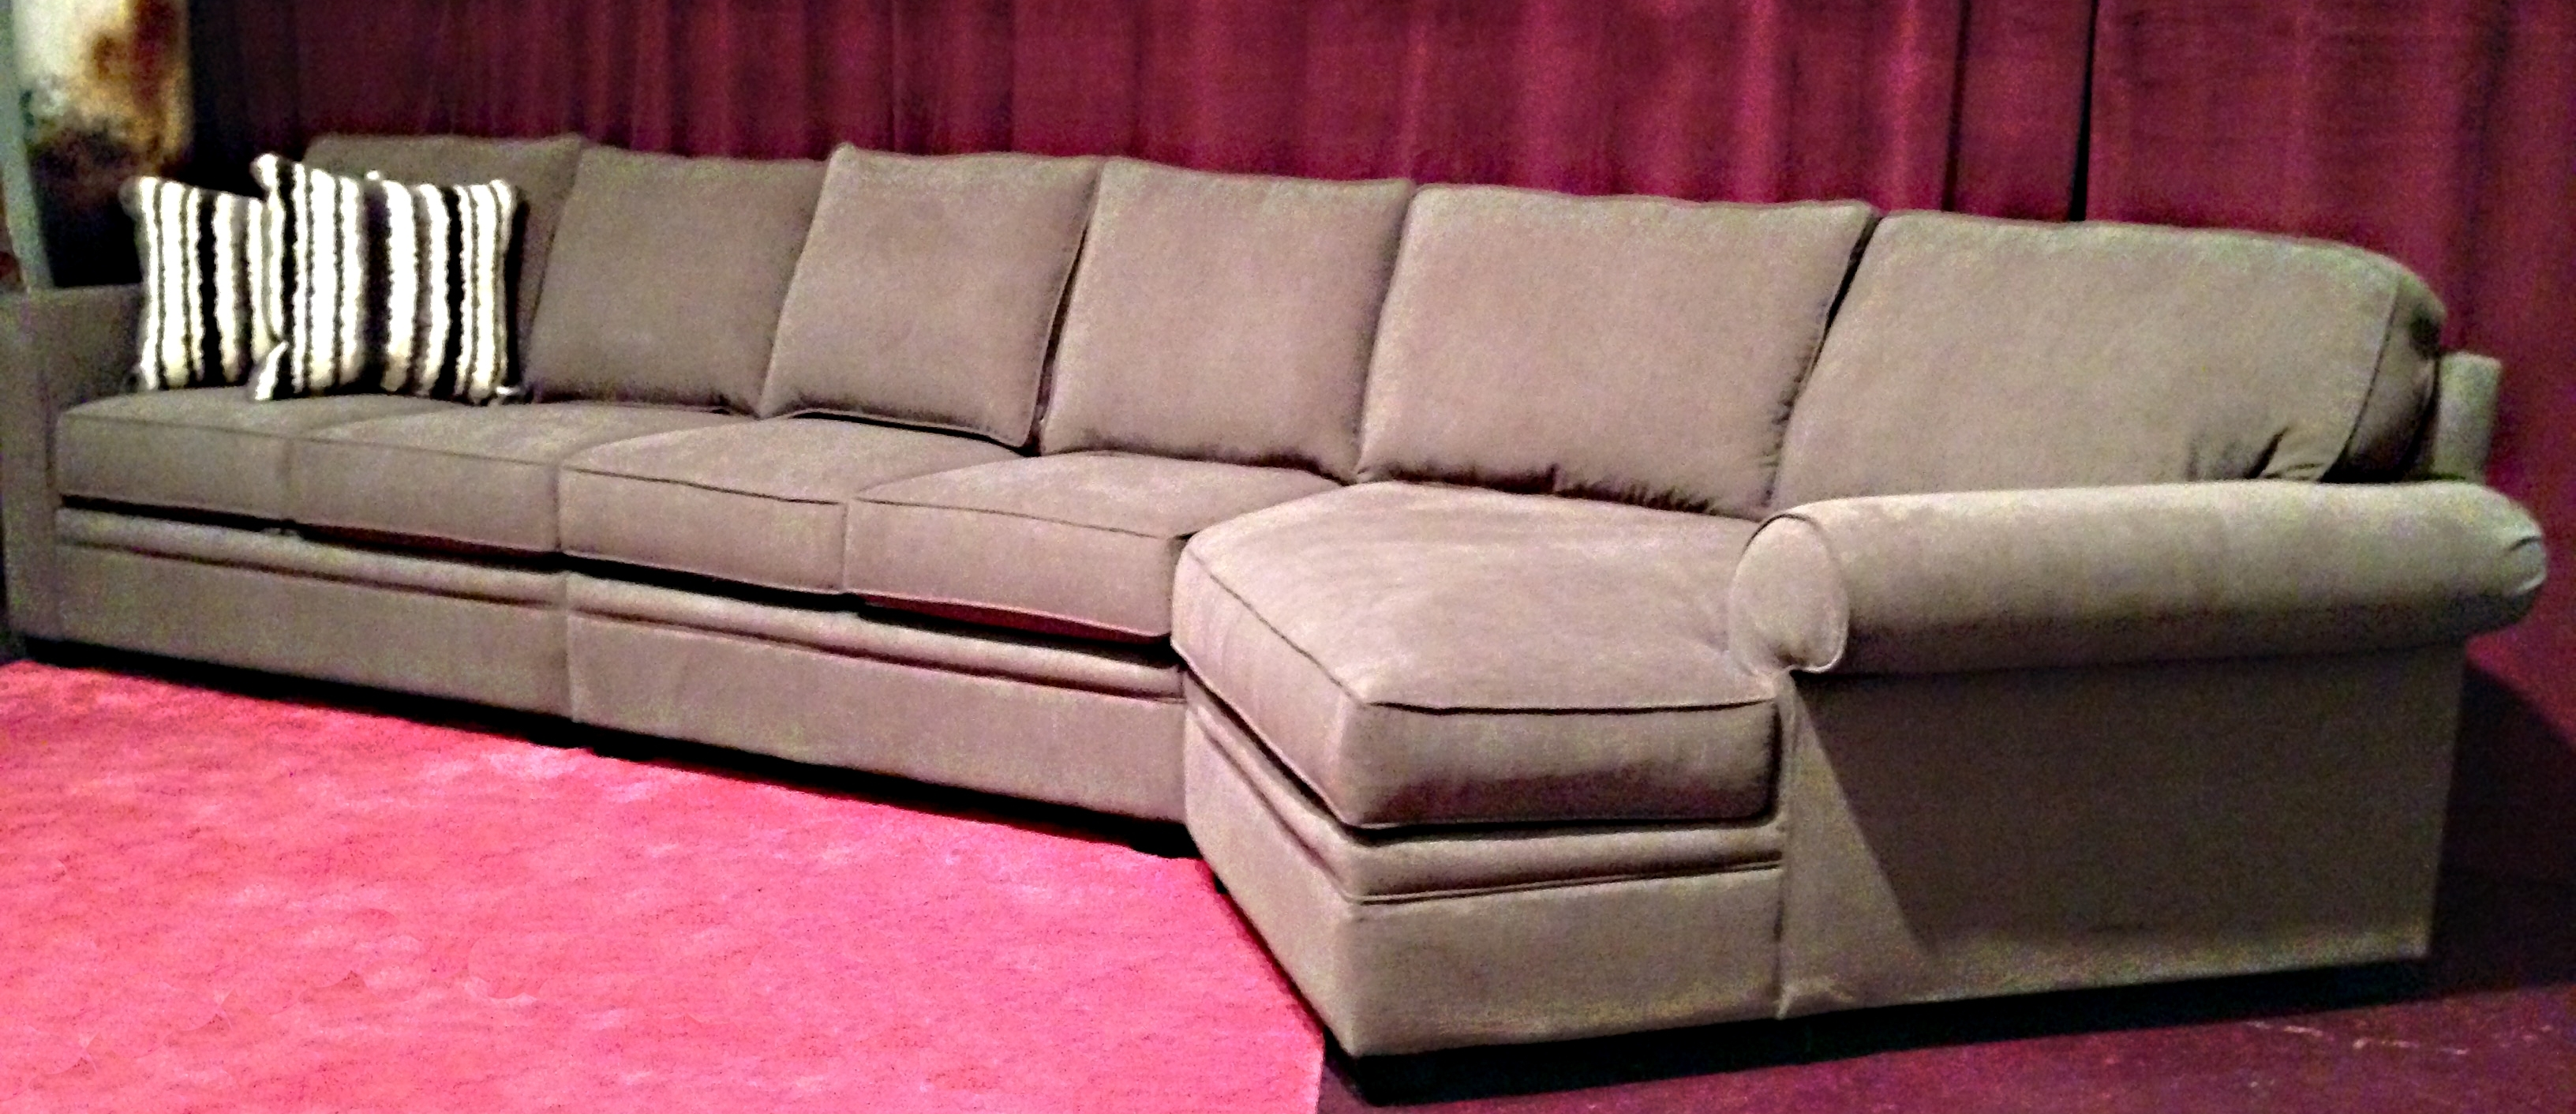 Sectional Sofas With Cuddler Chaise Intended For Best And Newest Deep L Shaped Seated Couch With Chaise Lounge Of 15 Outstanding (View 14 of 15)